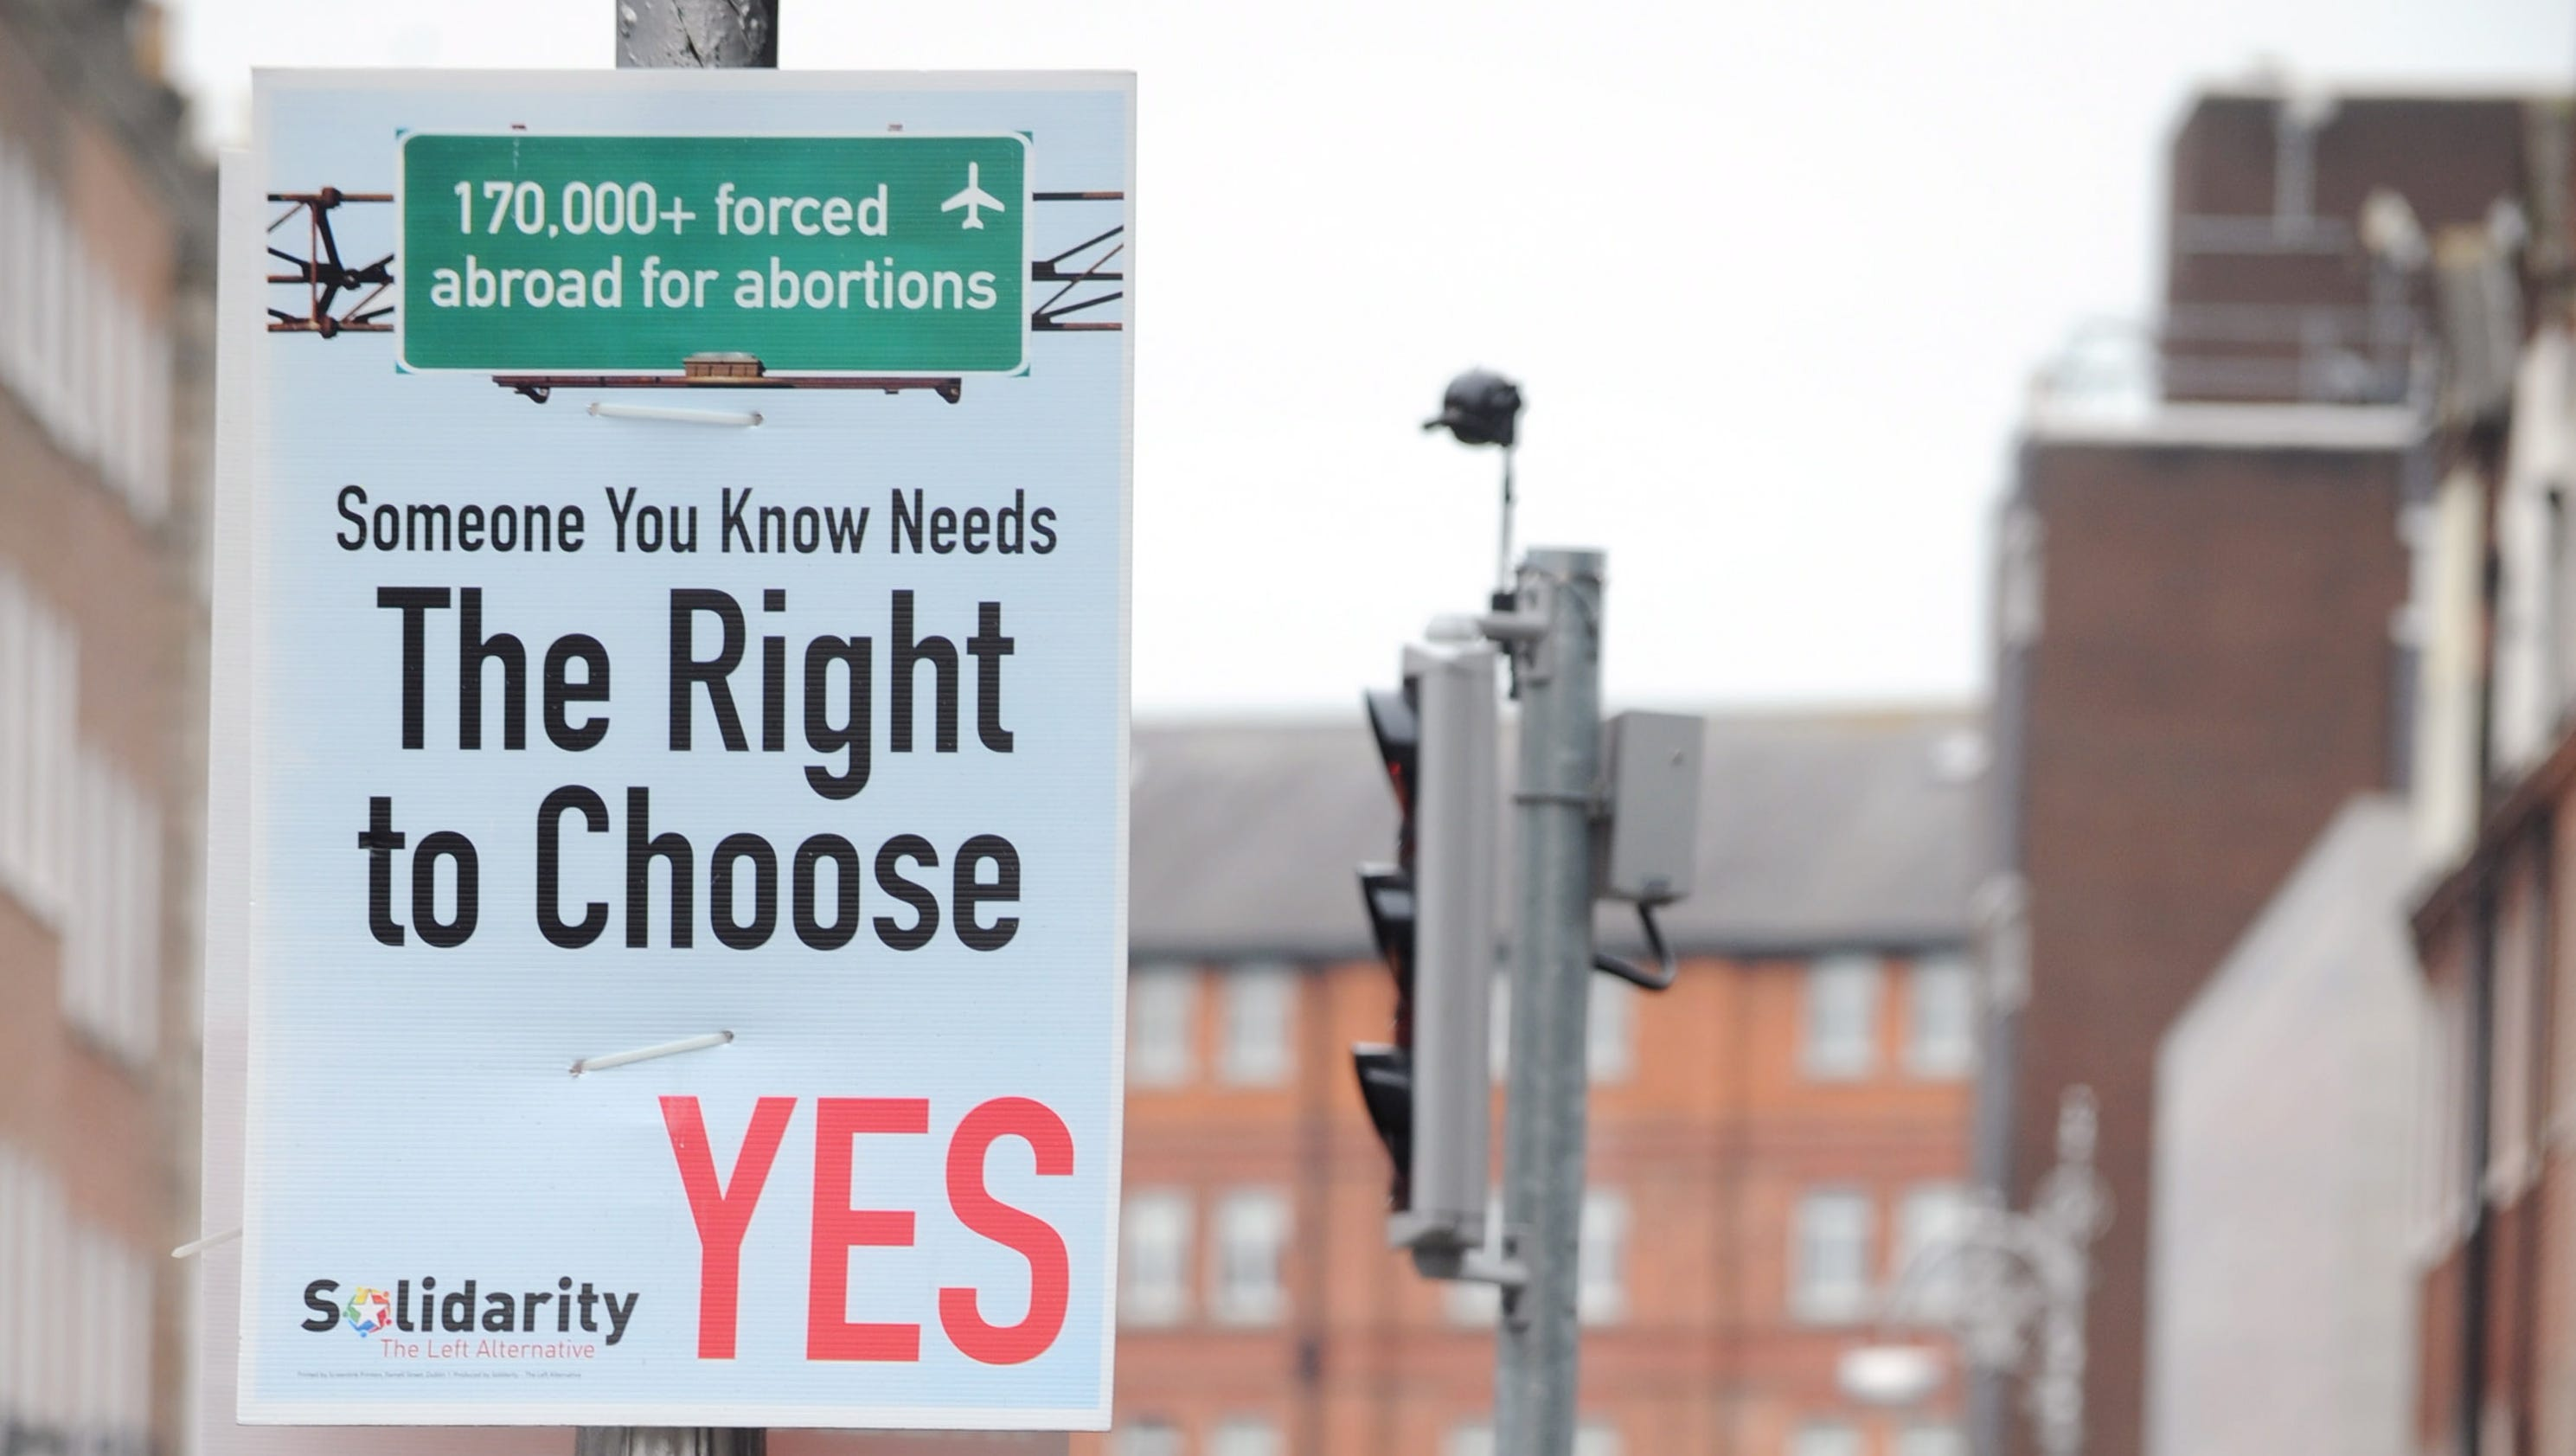 ireland abortion referendum - photo #8